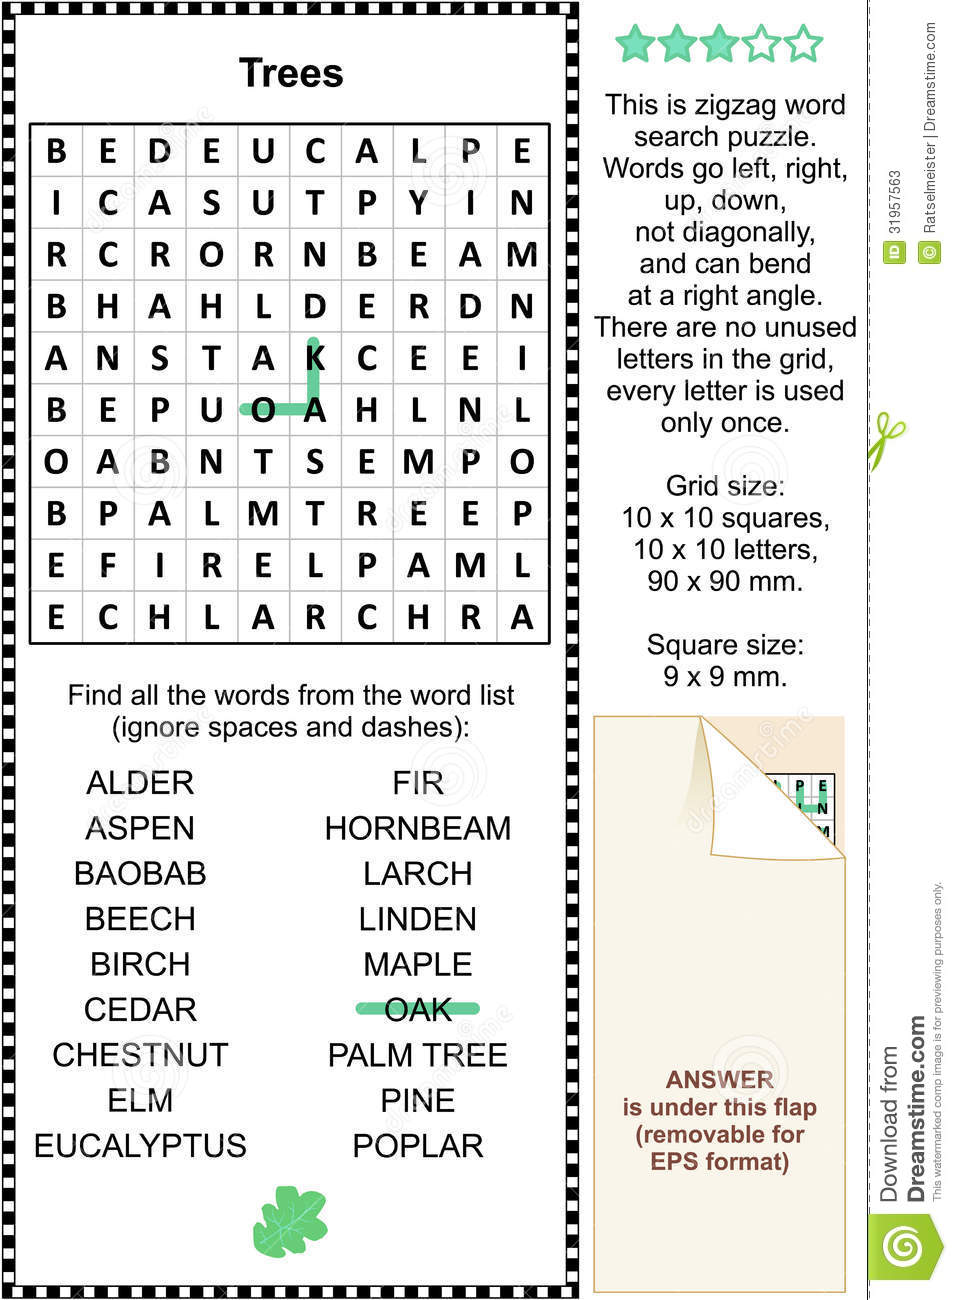 Word Puzzles For Adults Trees themed zigzag word